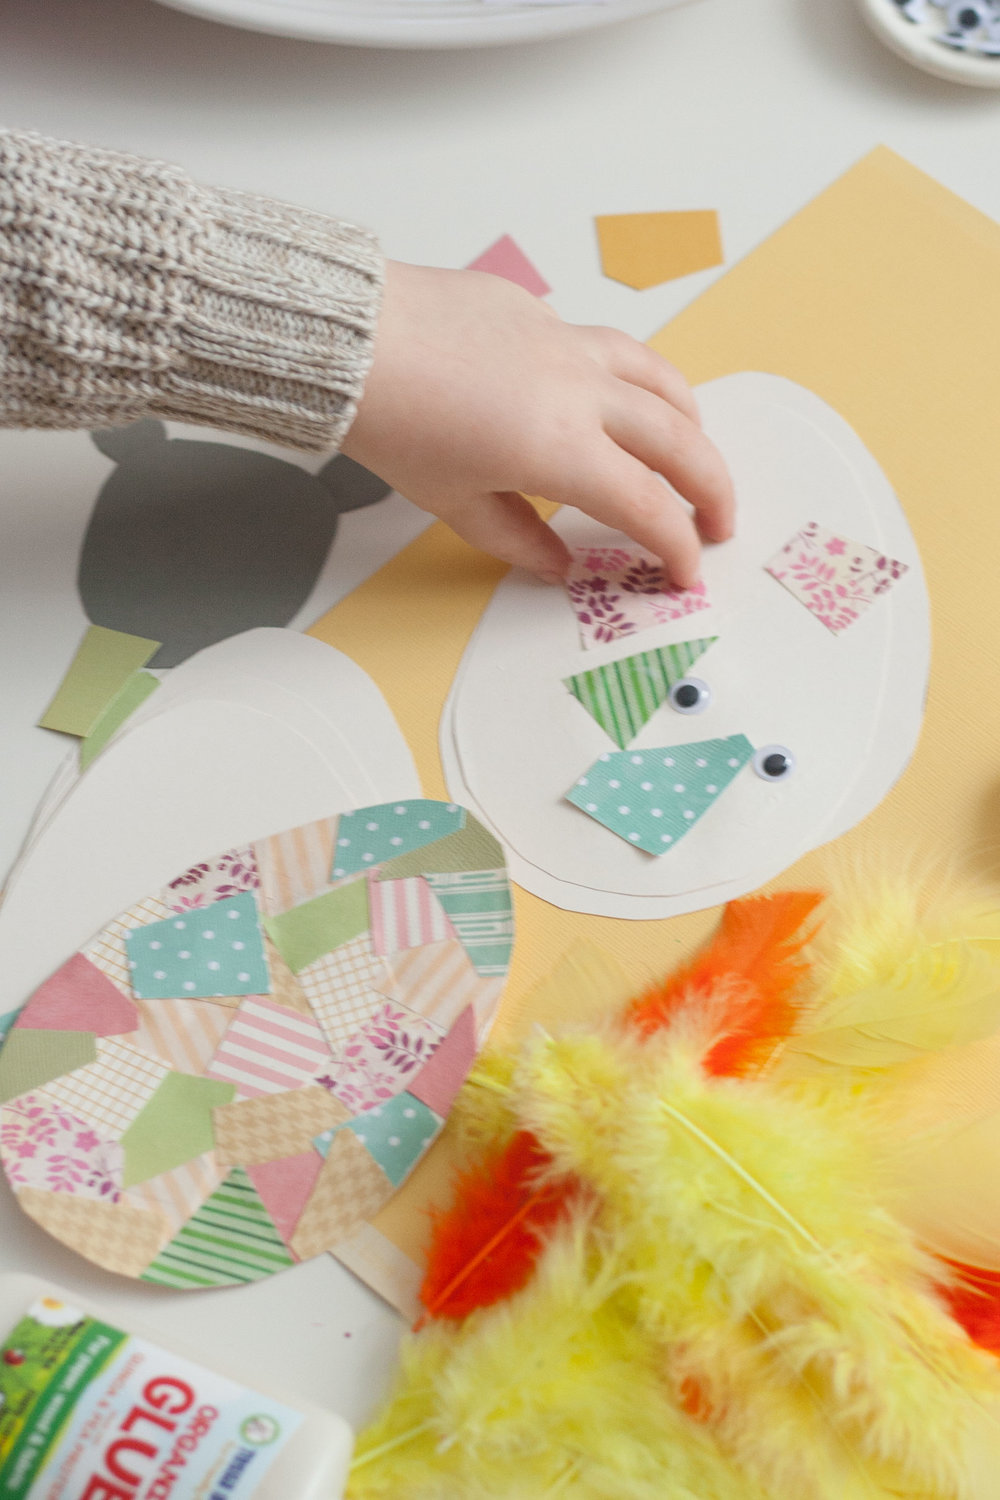 bit-and-bauble-easy-cheap-spring-easter-crafts-for-kids-toddlers-lamb-chick-egg-2.jpg